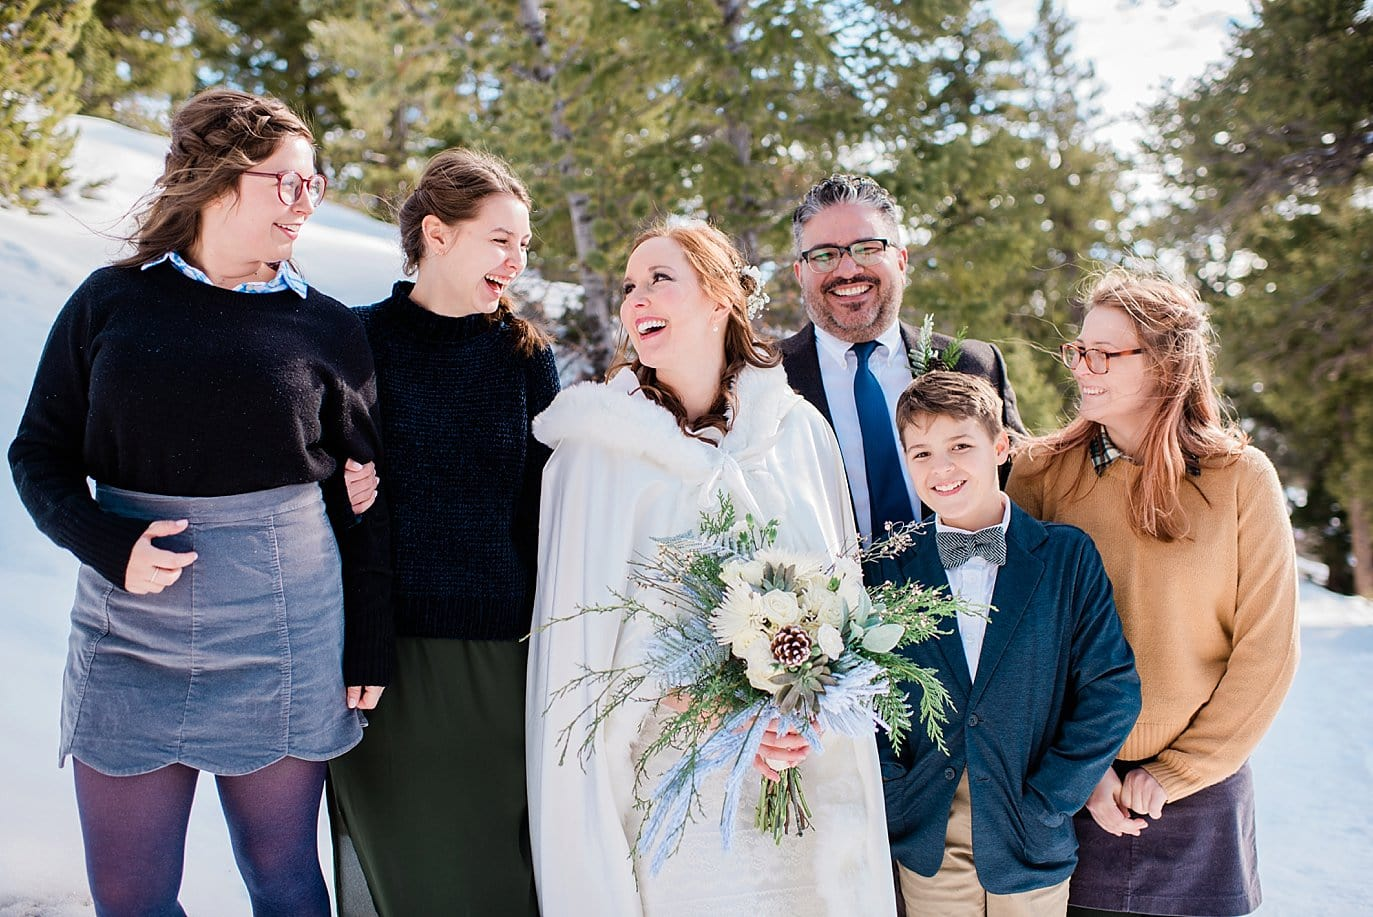 bride and groom and kids at Sapphire Point Elopement by Dillon wedding photographer Jennie Crate Photographer